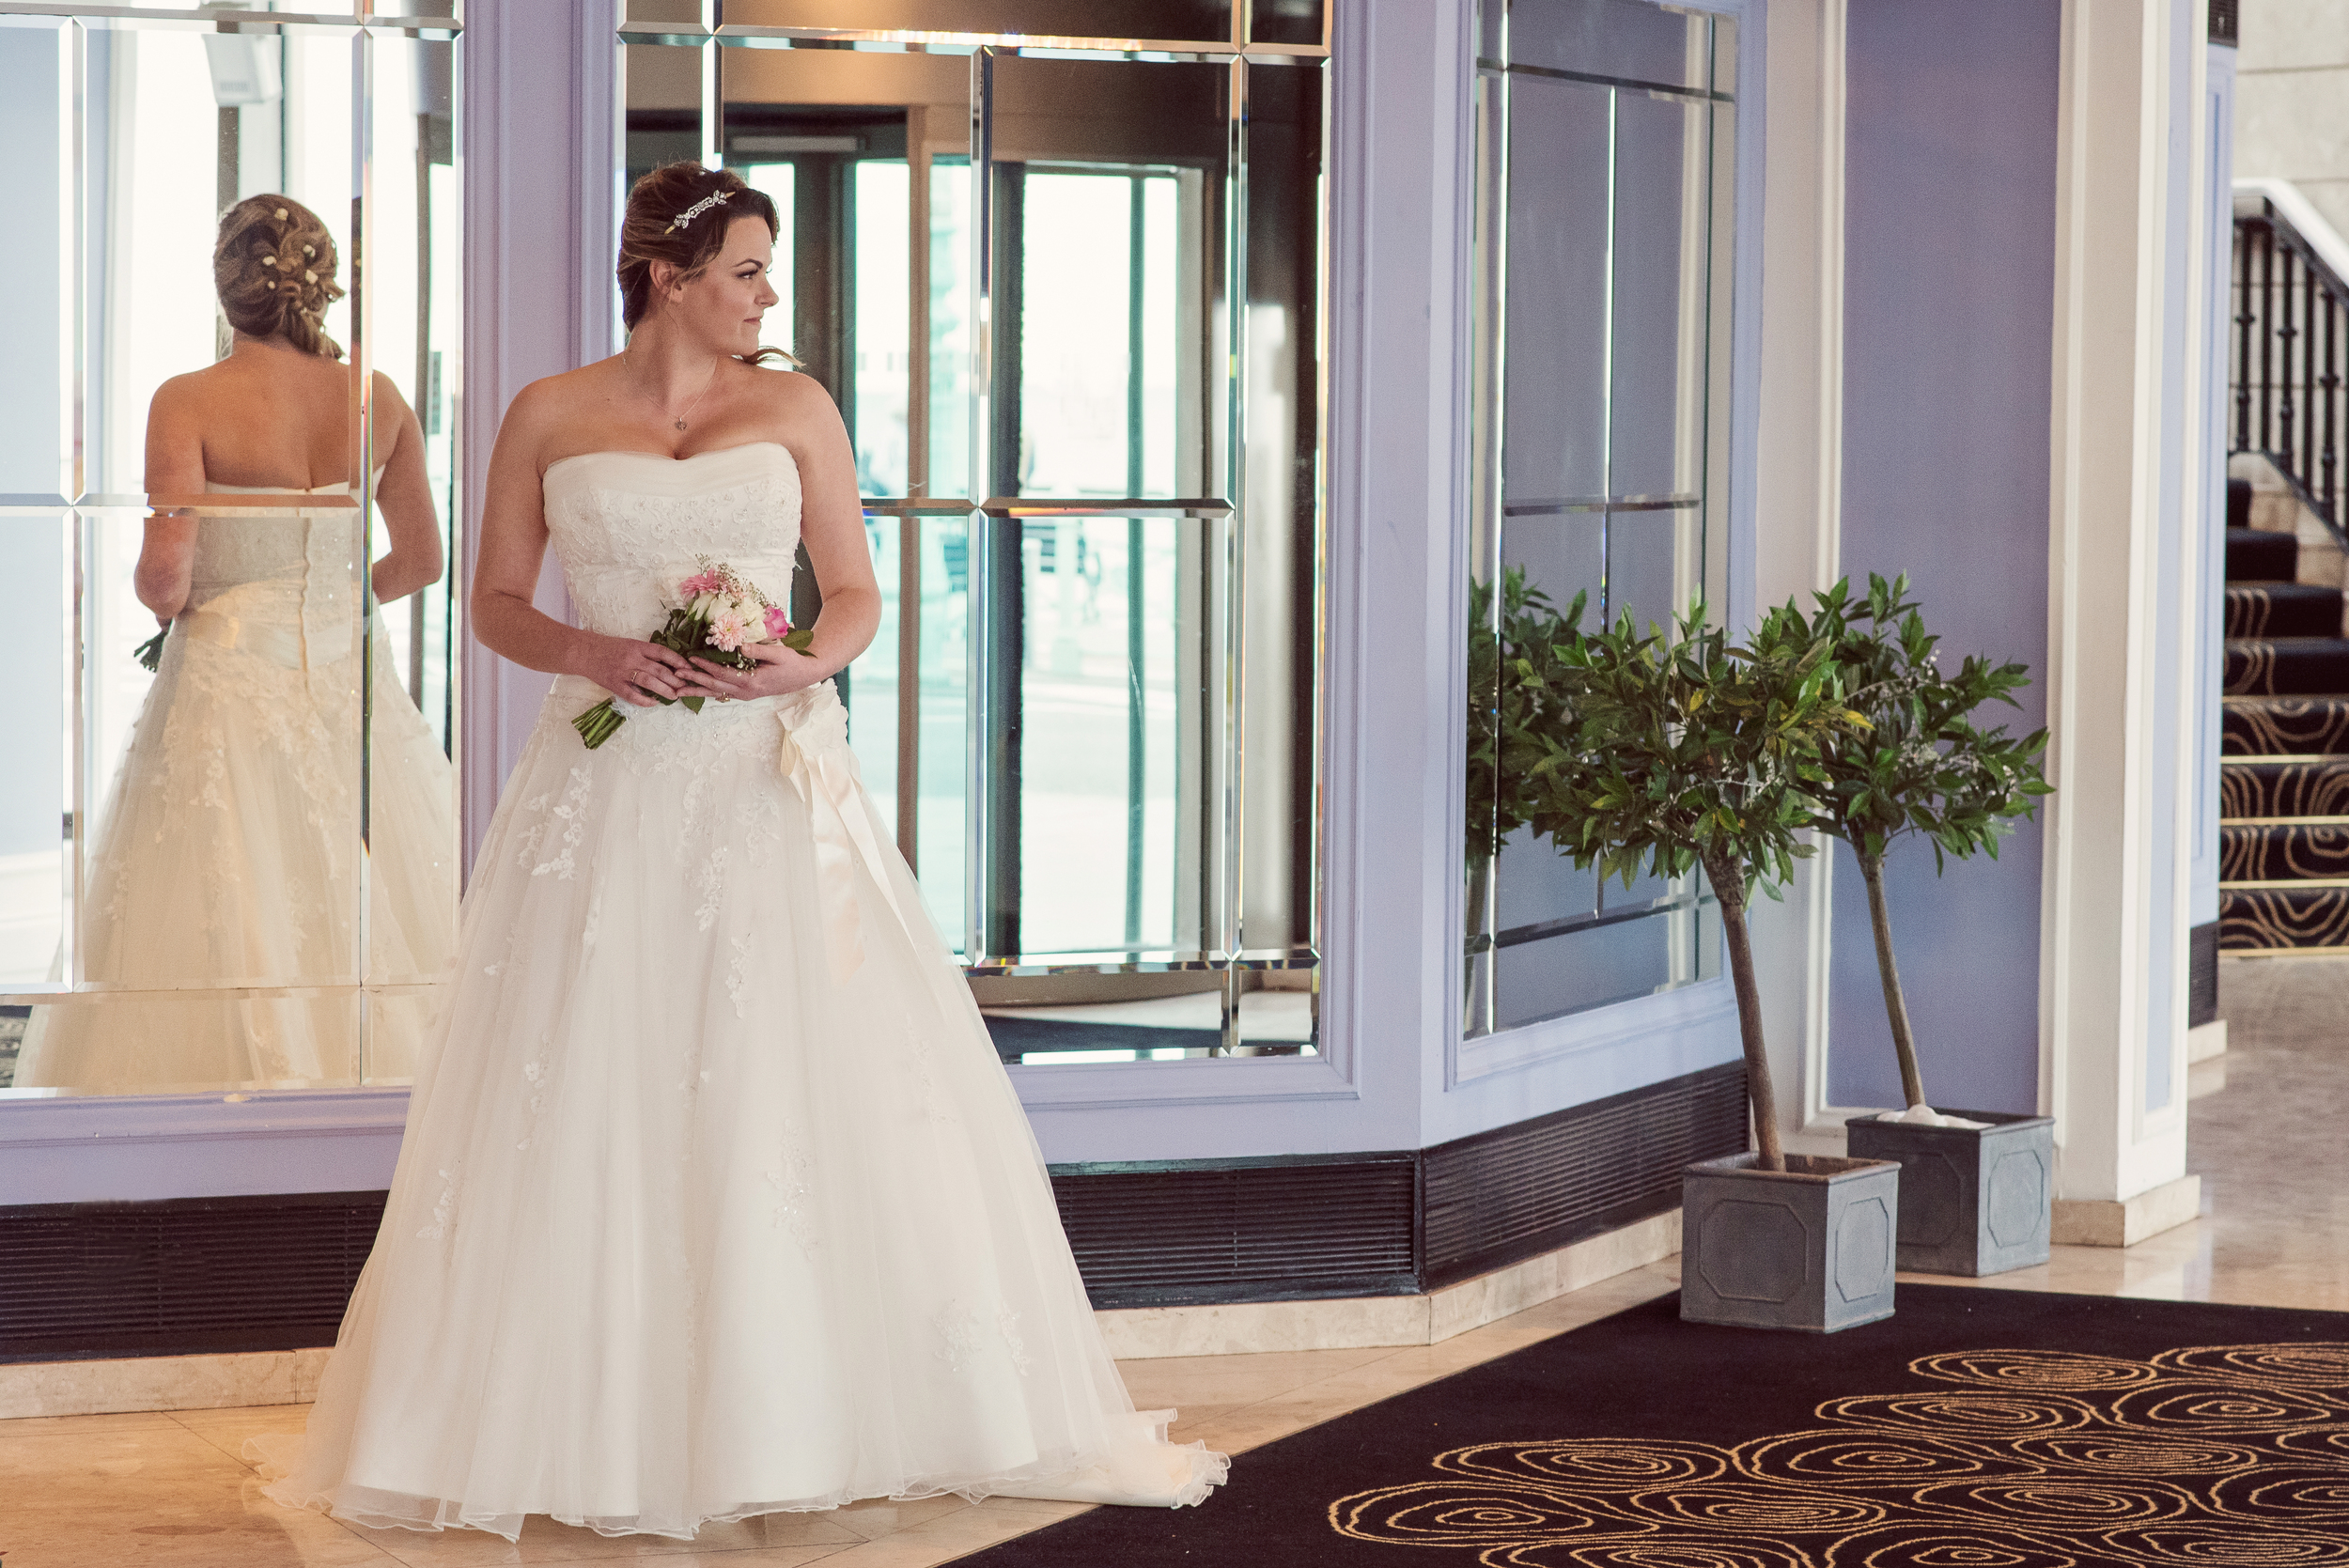 Bride in her wedding dress, Waterfront Hotel Brighton